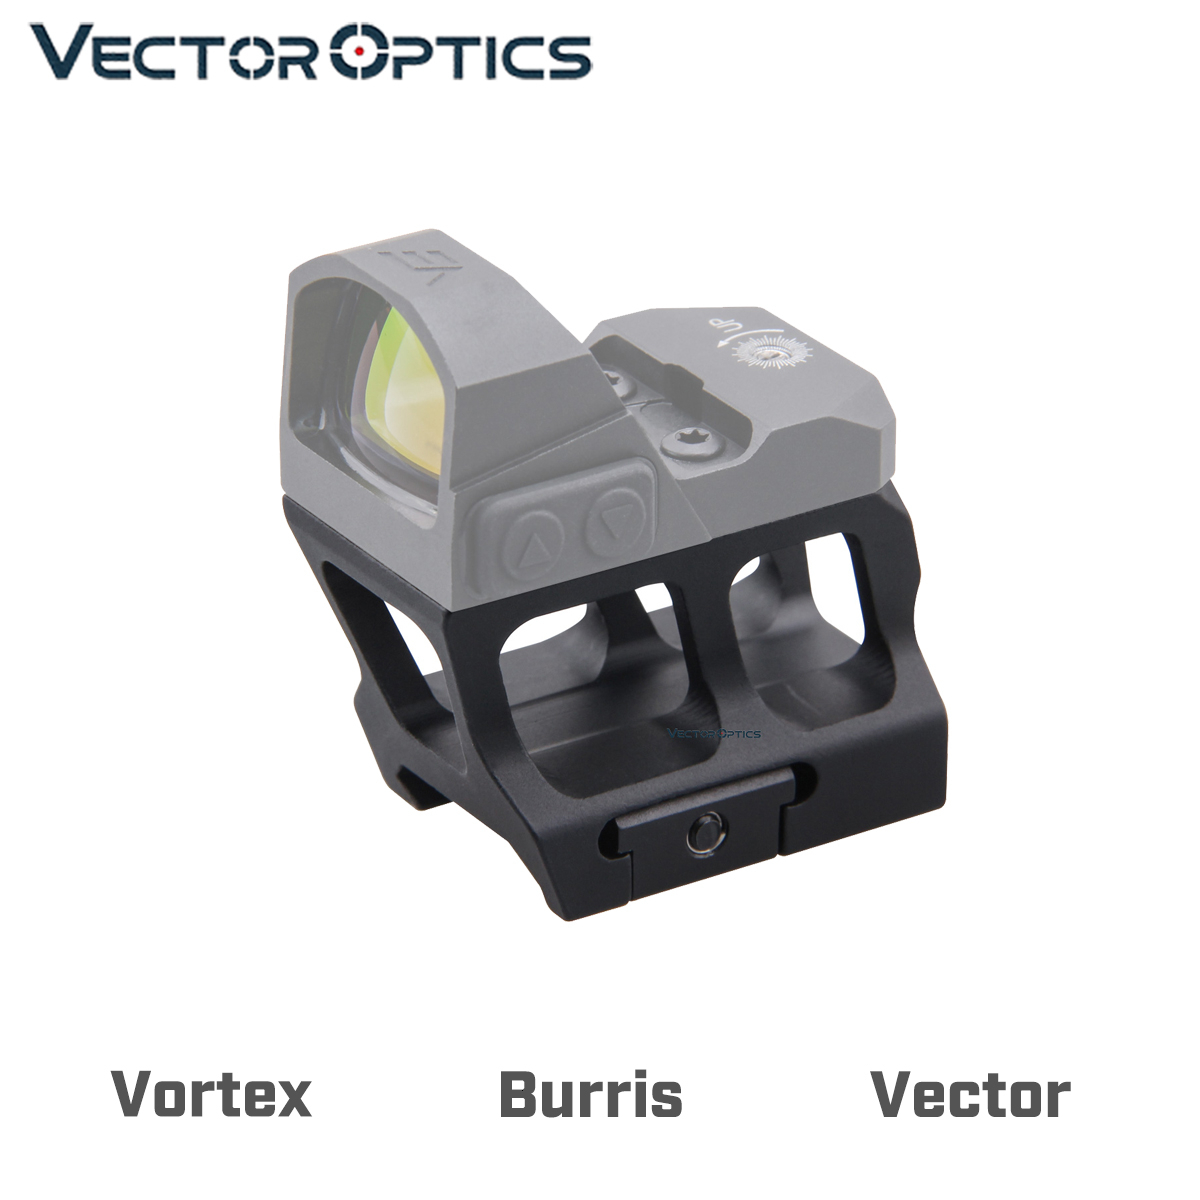 Vector Optics Red Dot Scope Pistol Mini Sight Tactical Riser Picatinny Mount Absolute Co-witness Fits V.T. Burr1s Vector